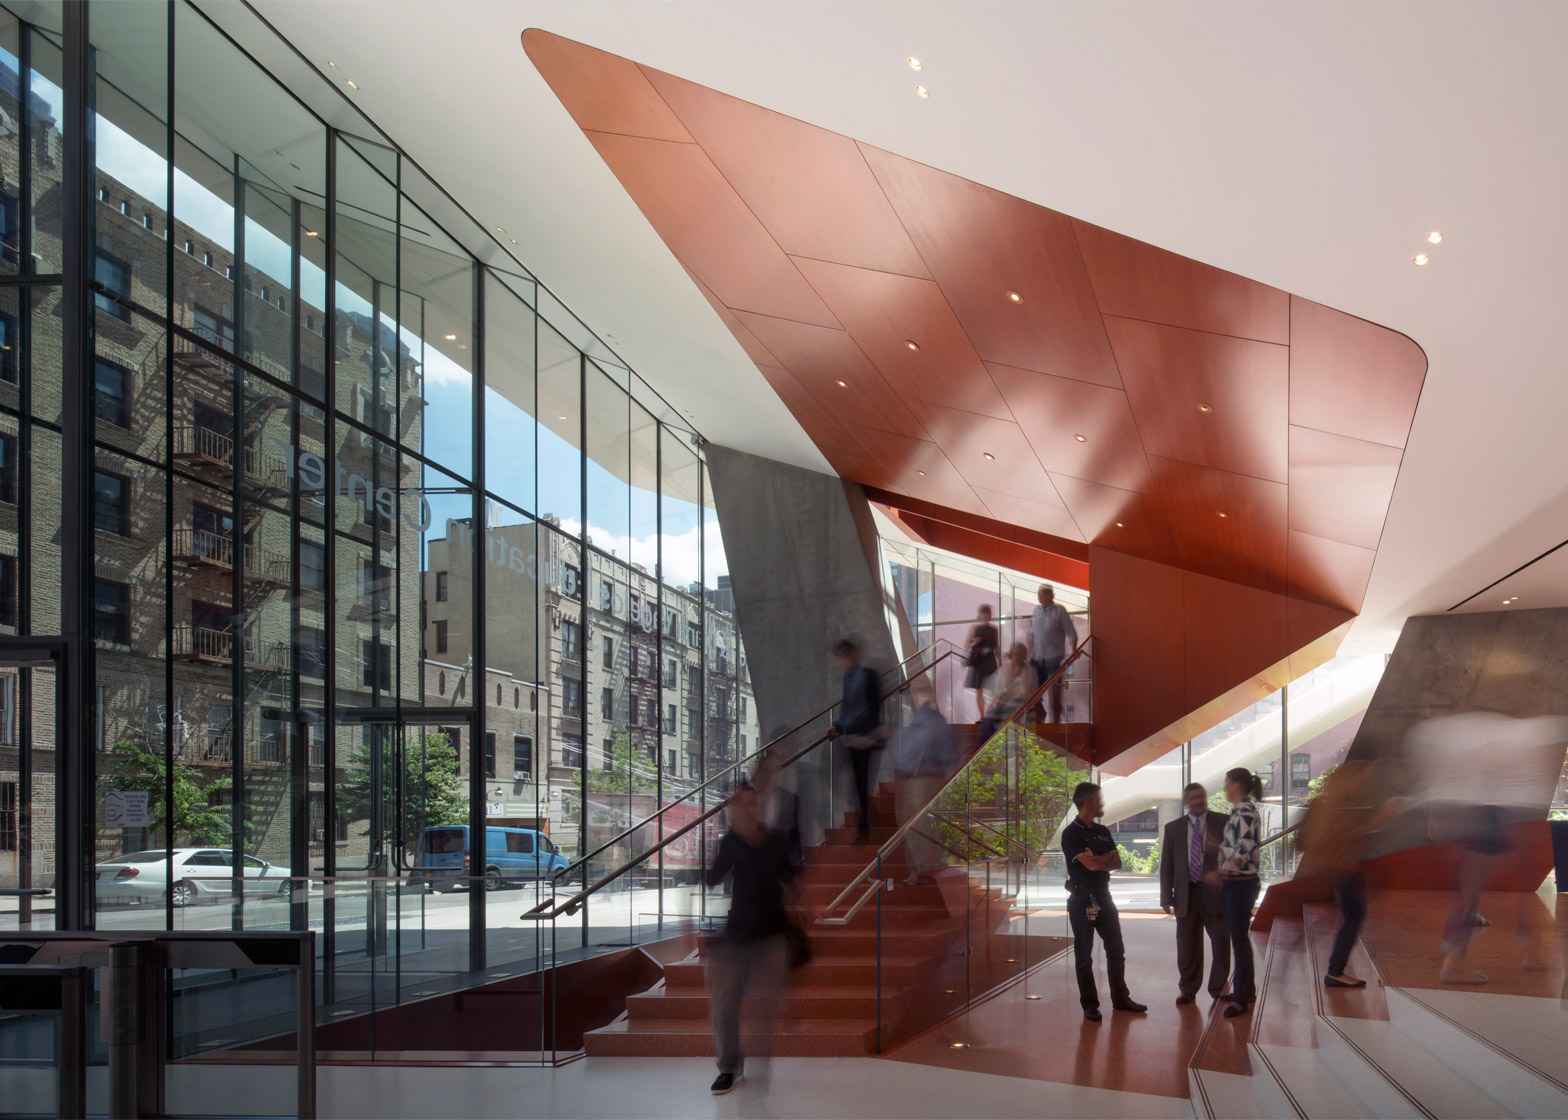 The Vagelos Education Building by DS + R